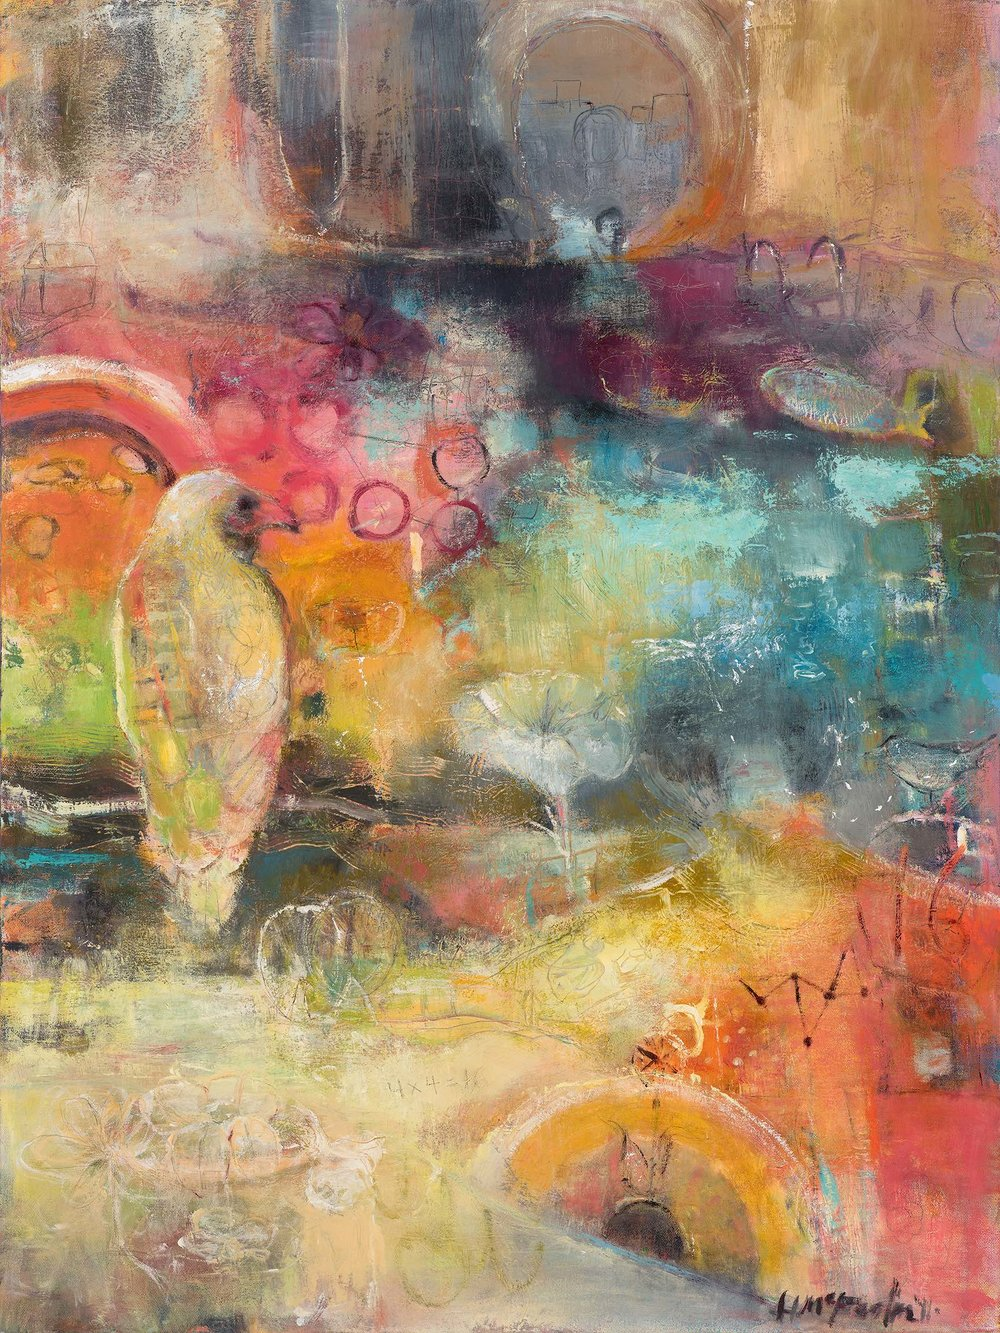 SOUL EDUCATION - OIL ON CANVAS / 24 X 36 (SOLD)